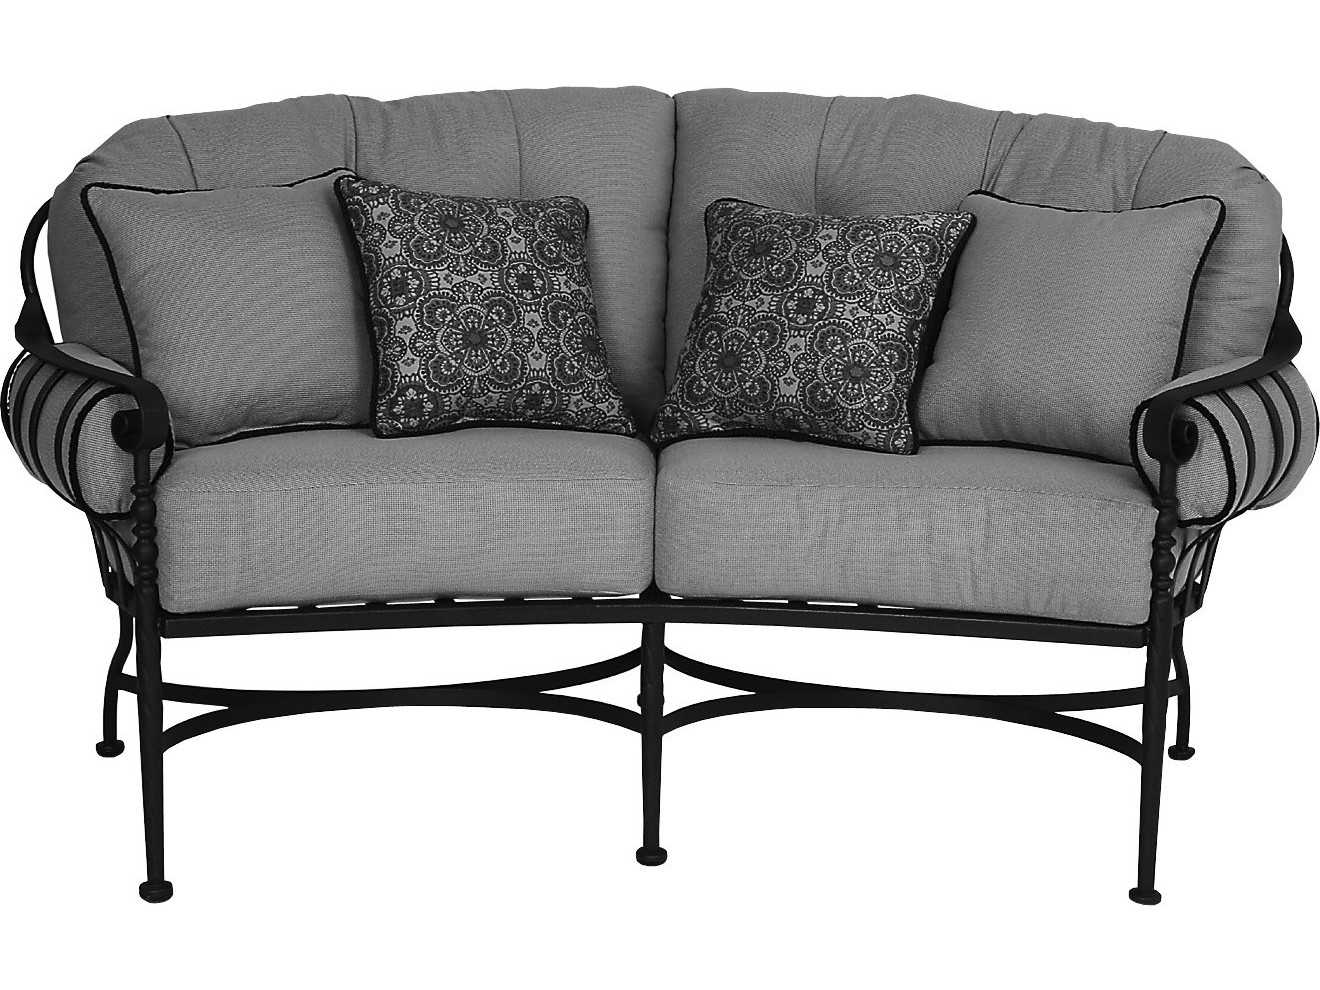 meadowcraft athens loveseat replacement cushions 3621000 01ch. Black Bedroom Furniture Sets. Home Design Ideas